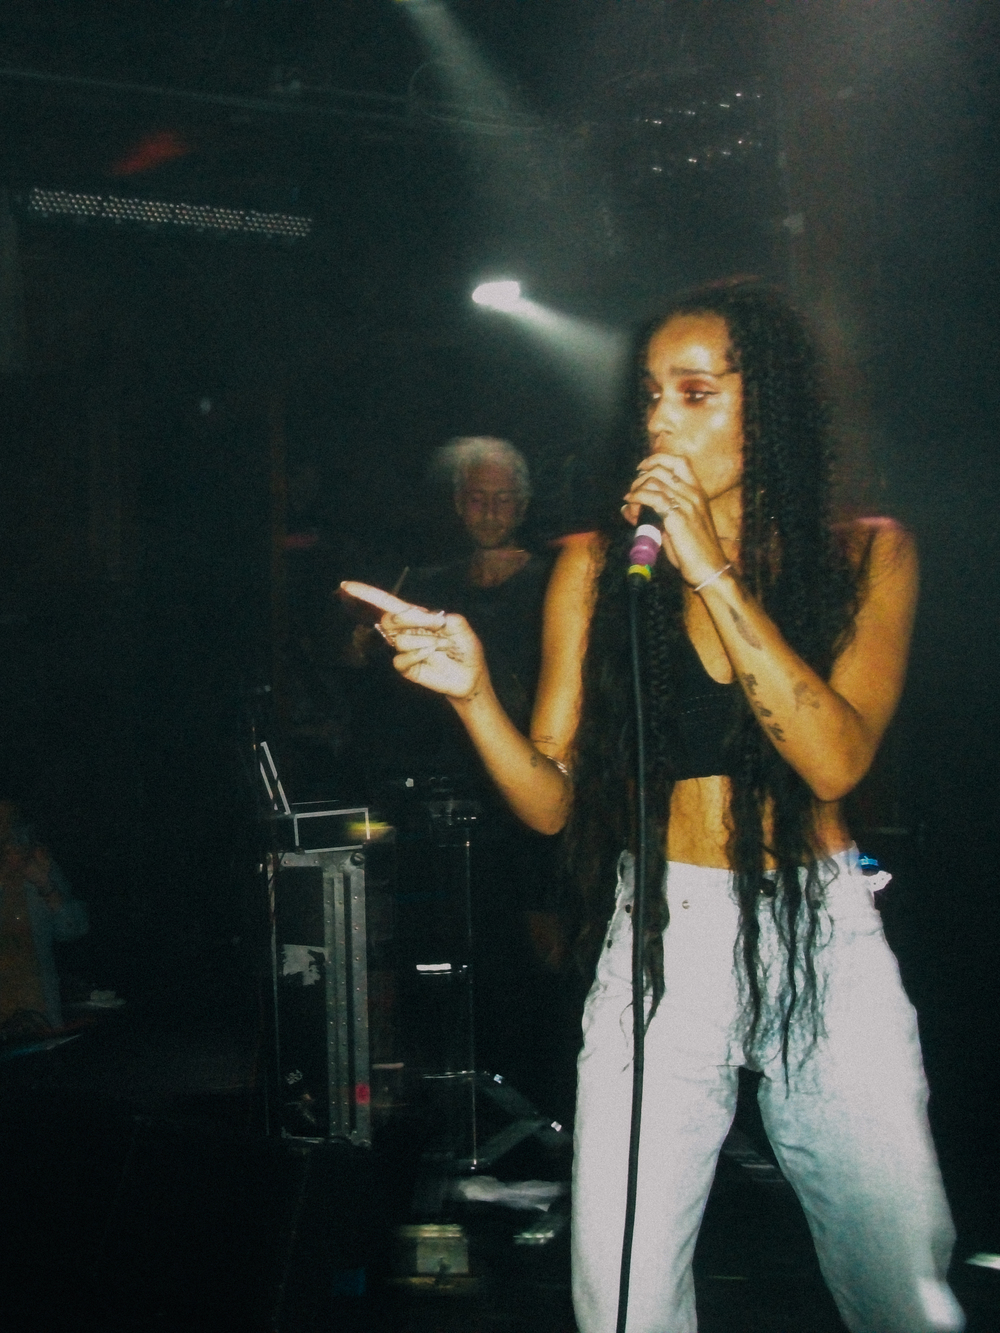 Lolawolf x Troubadour (16 of 25).jpg